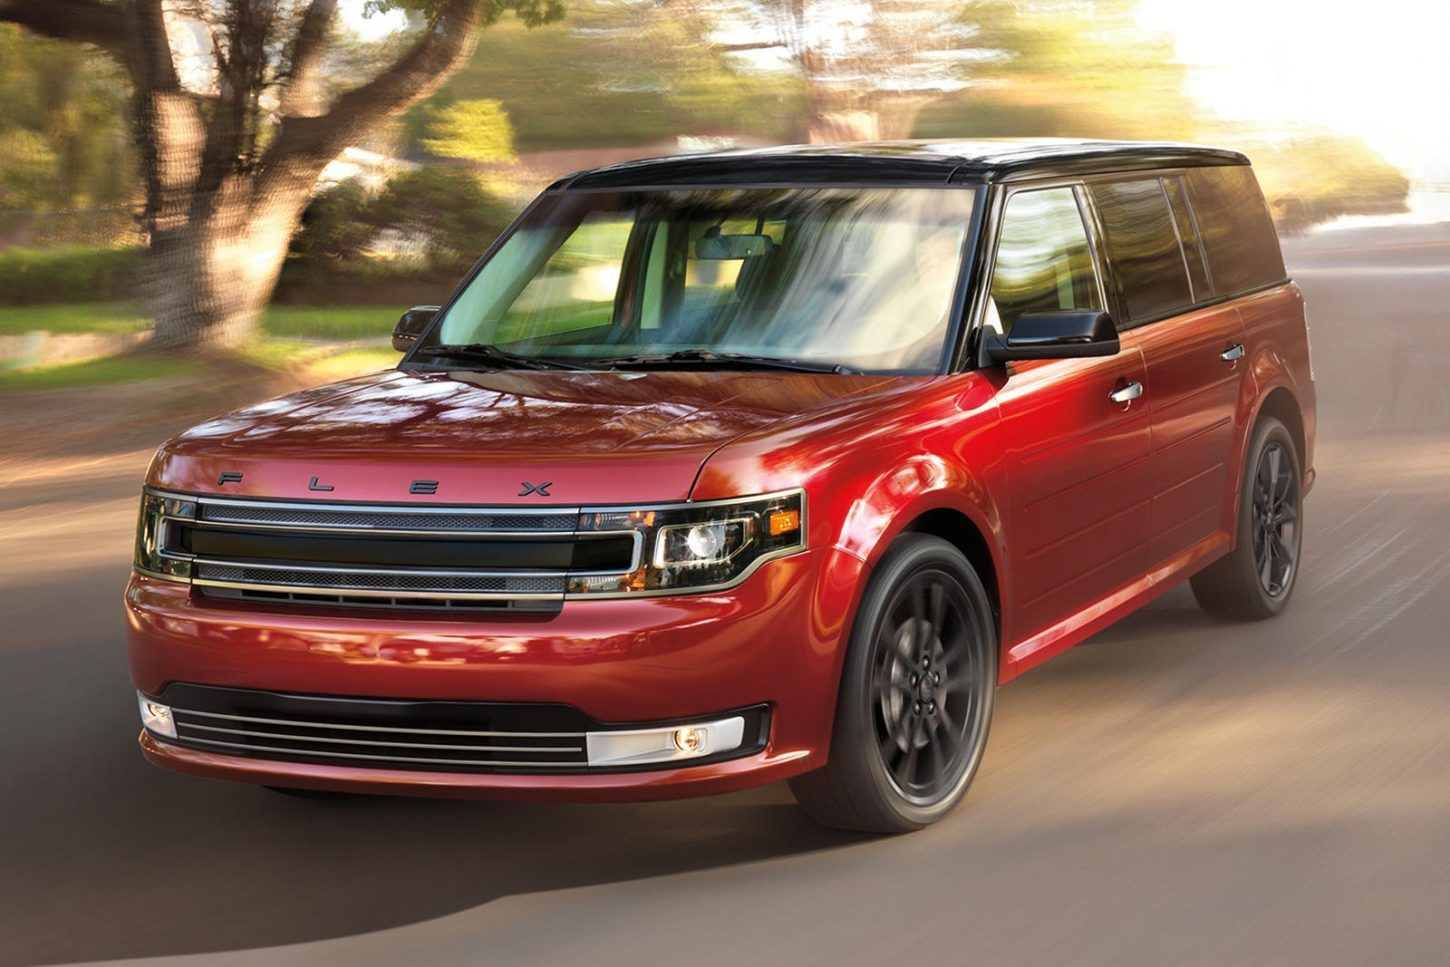 2020 Ford Flex Review Engine Release Date Price Trim Levels Photos